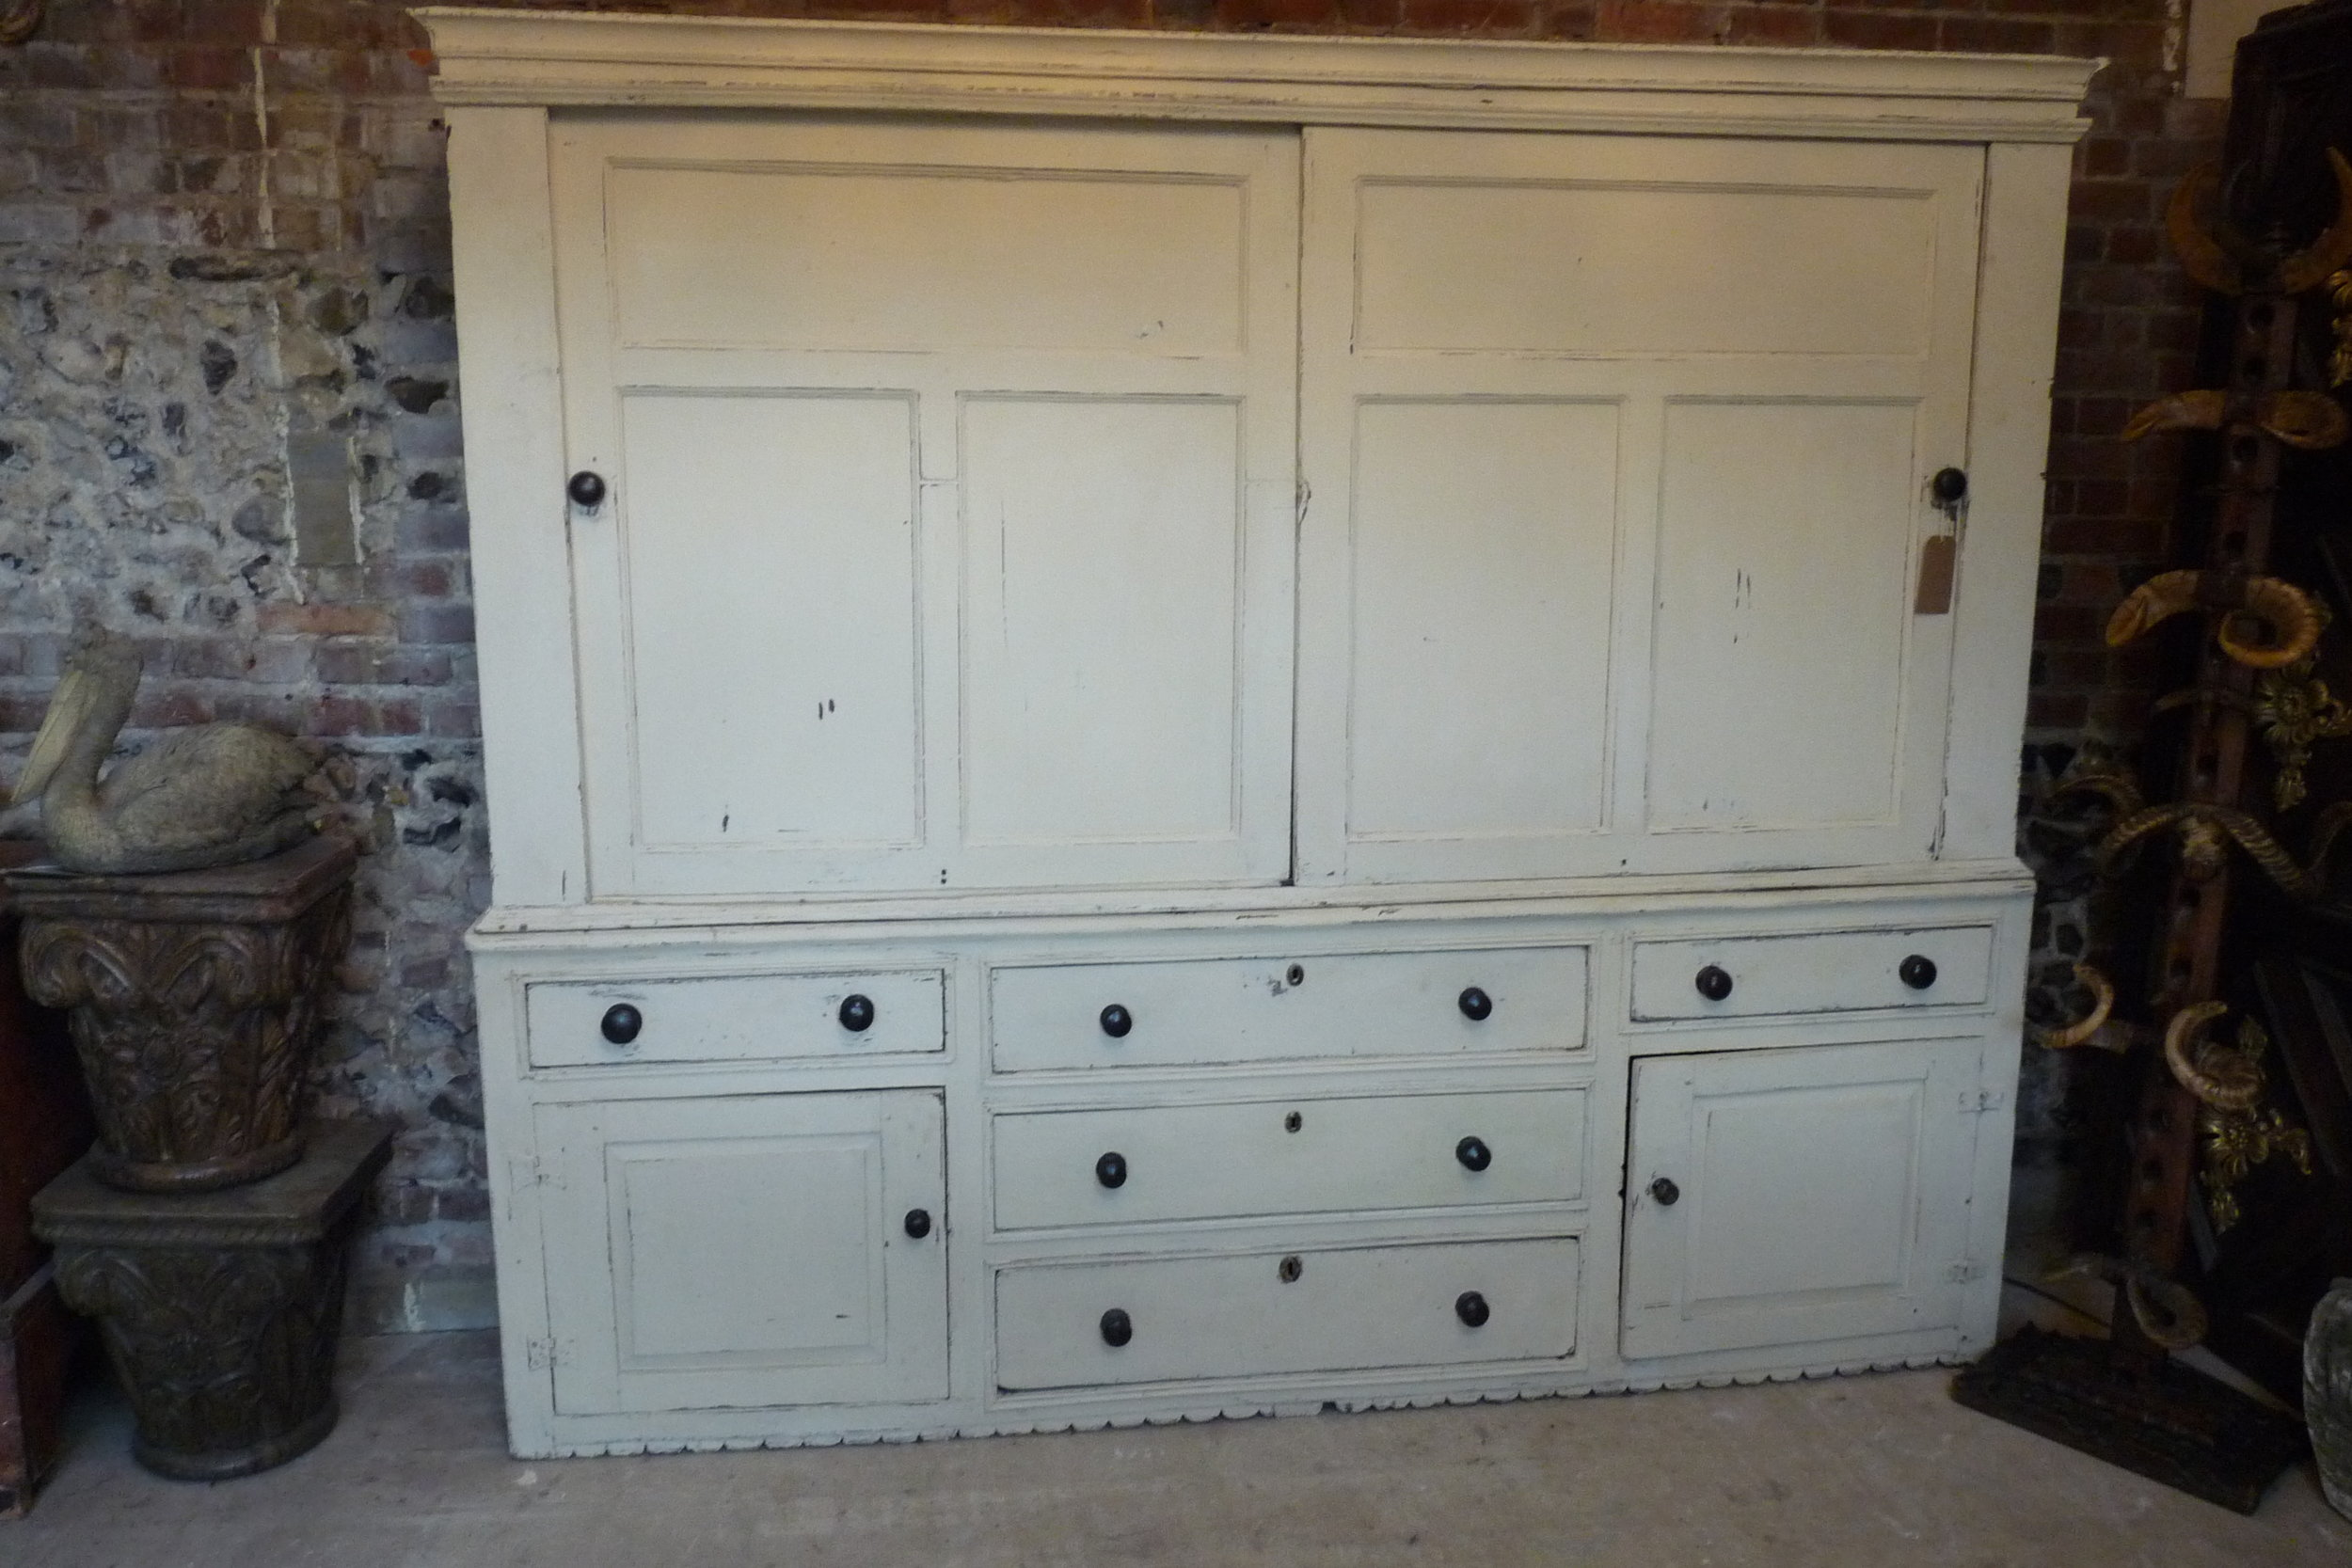 Large Georgian painted housekeeper's cupboard with sliding doors and unusual decorative plinth from a farm house in Derbyshire. £3,750